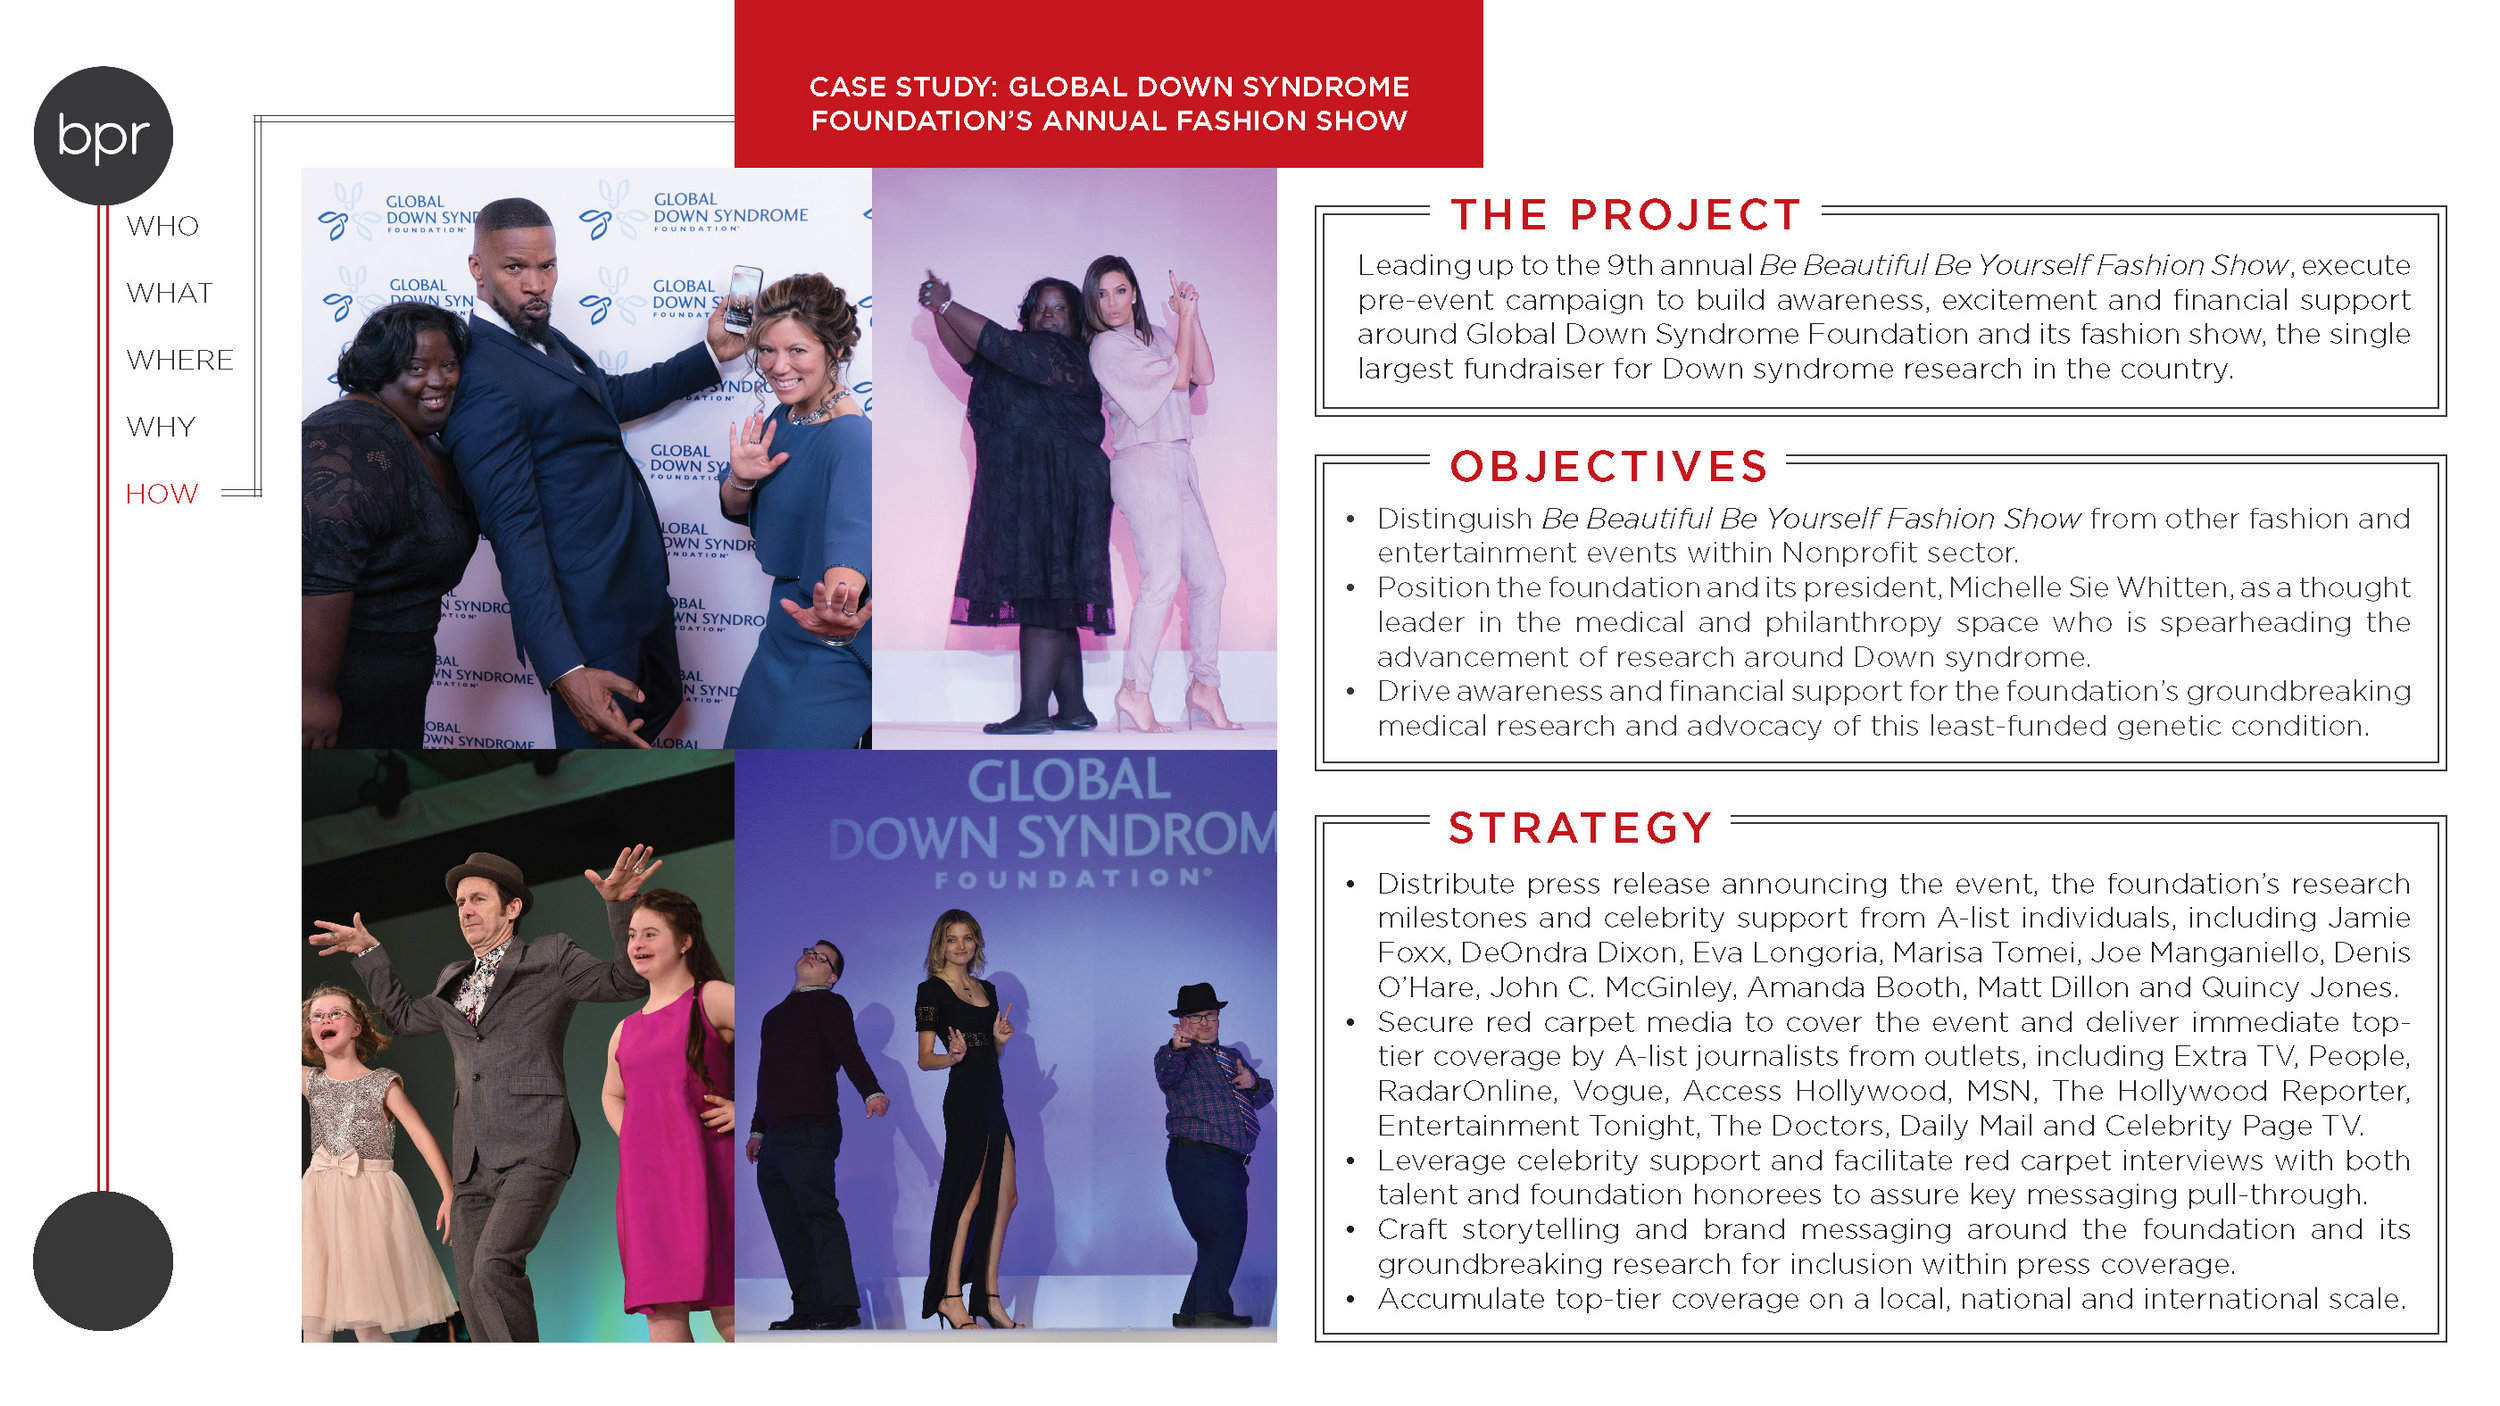 Global Down Syndrome Fashion Show Case Study_Page_2.jpg